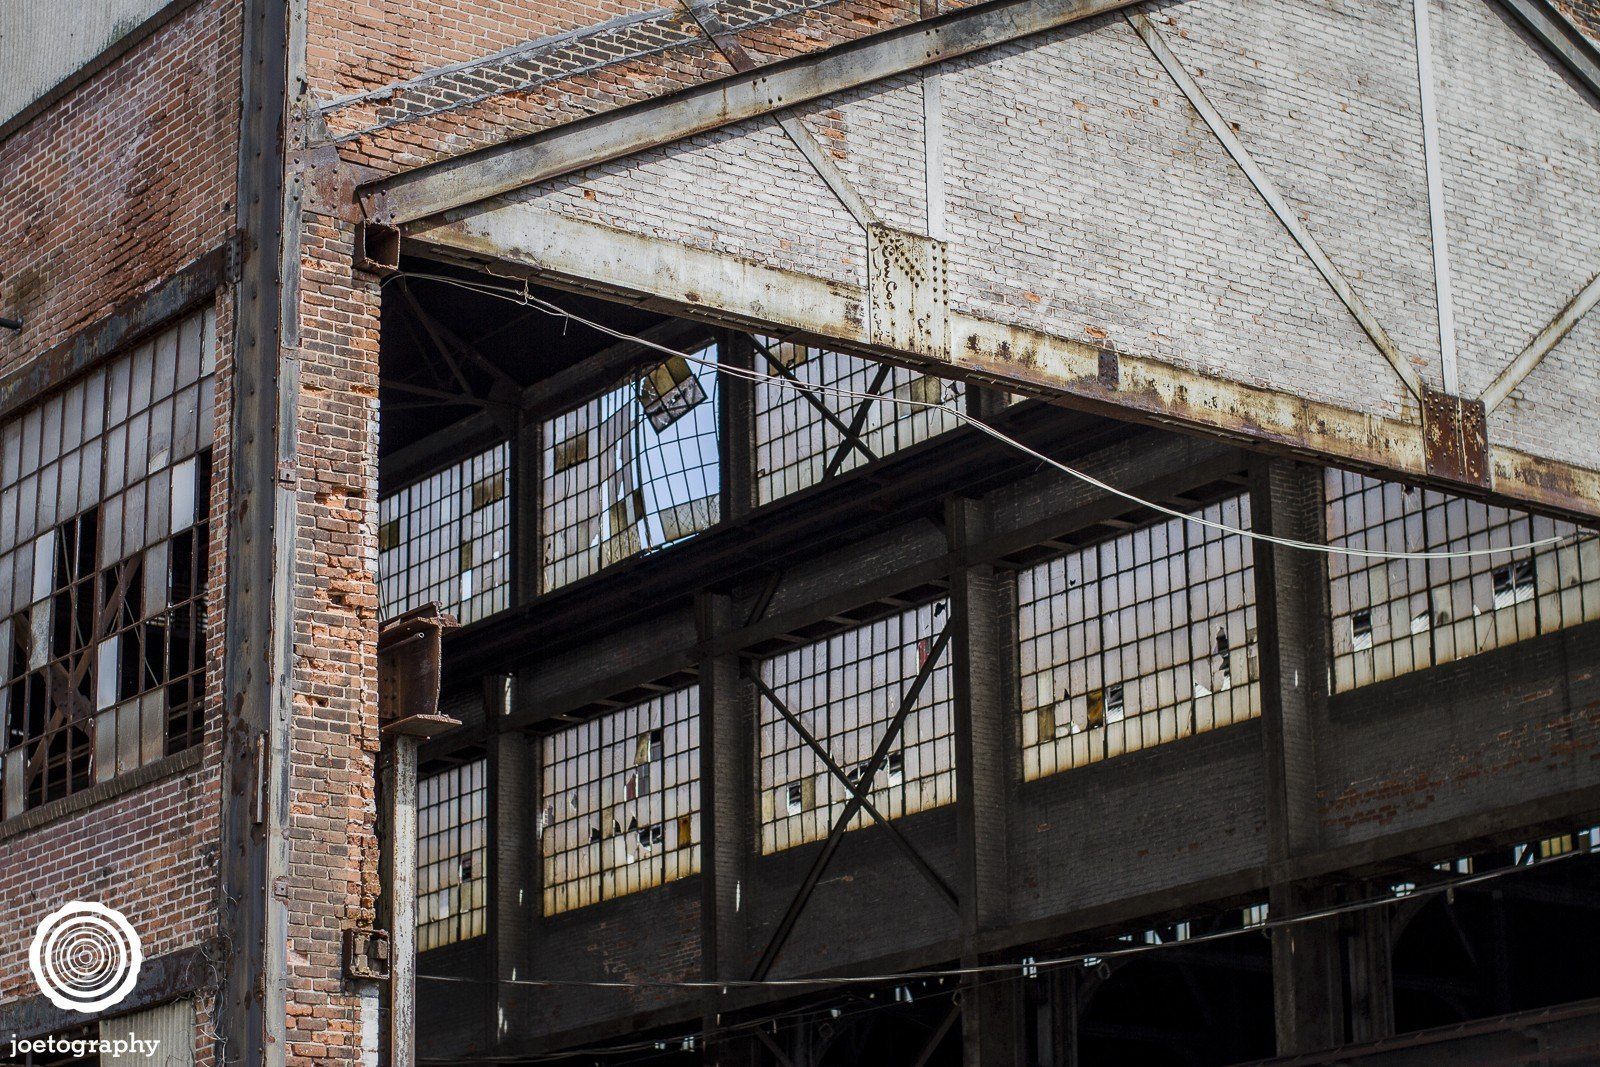 joetography-travel-photography-bethlehem-steel-pennsylvania-2015-16